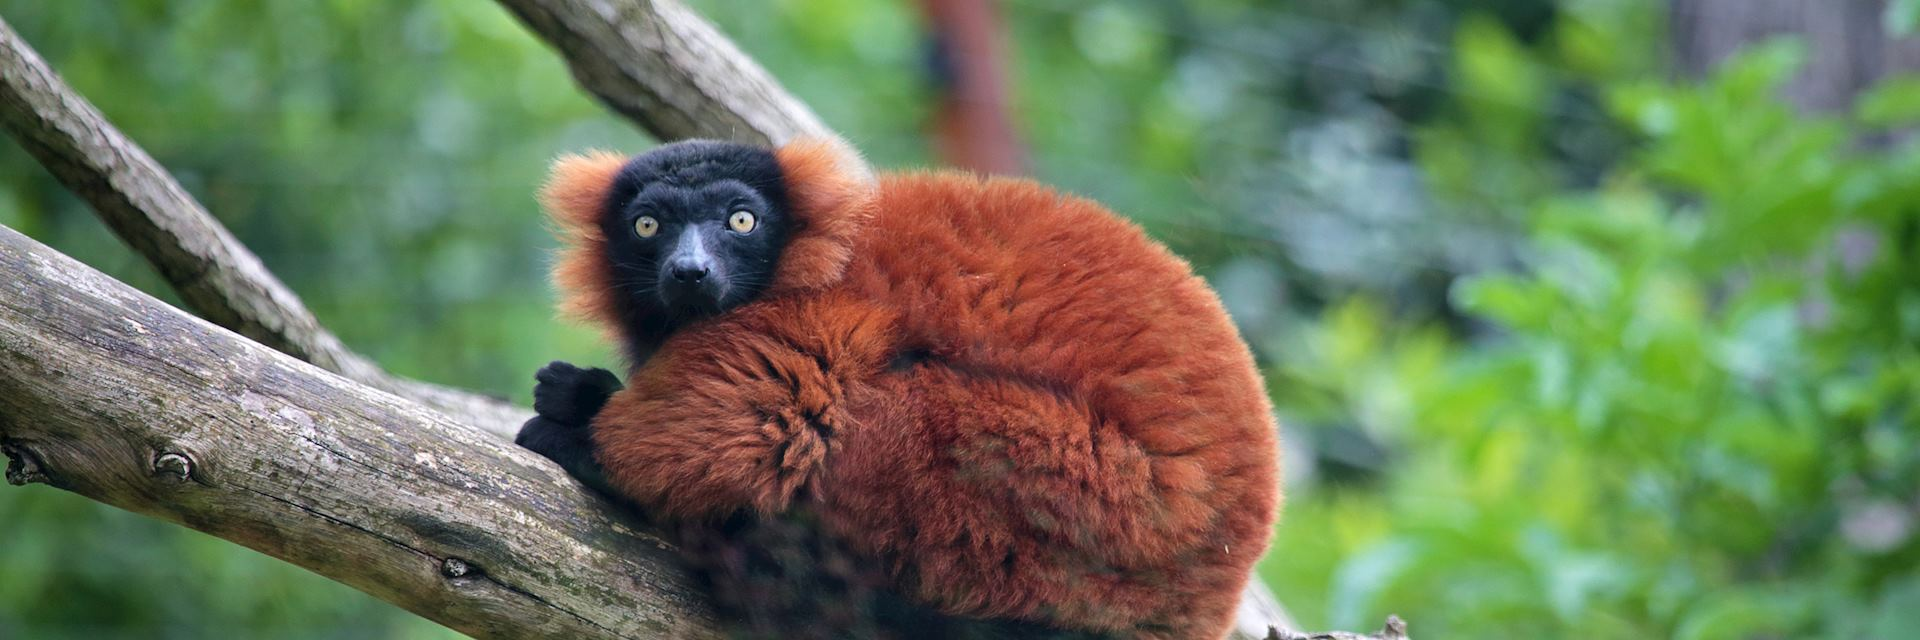 Red ruffed lemur, Madagascar